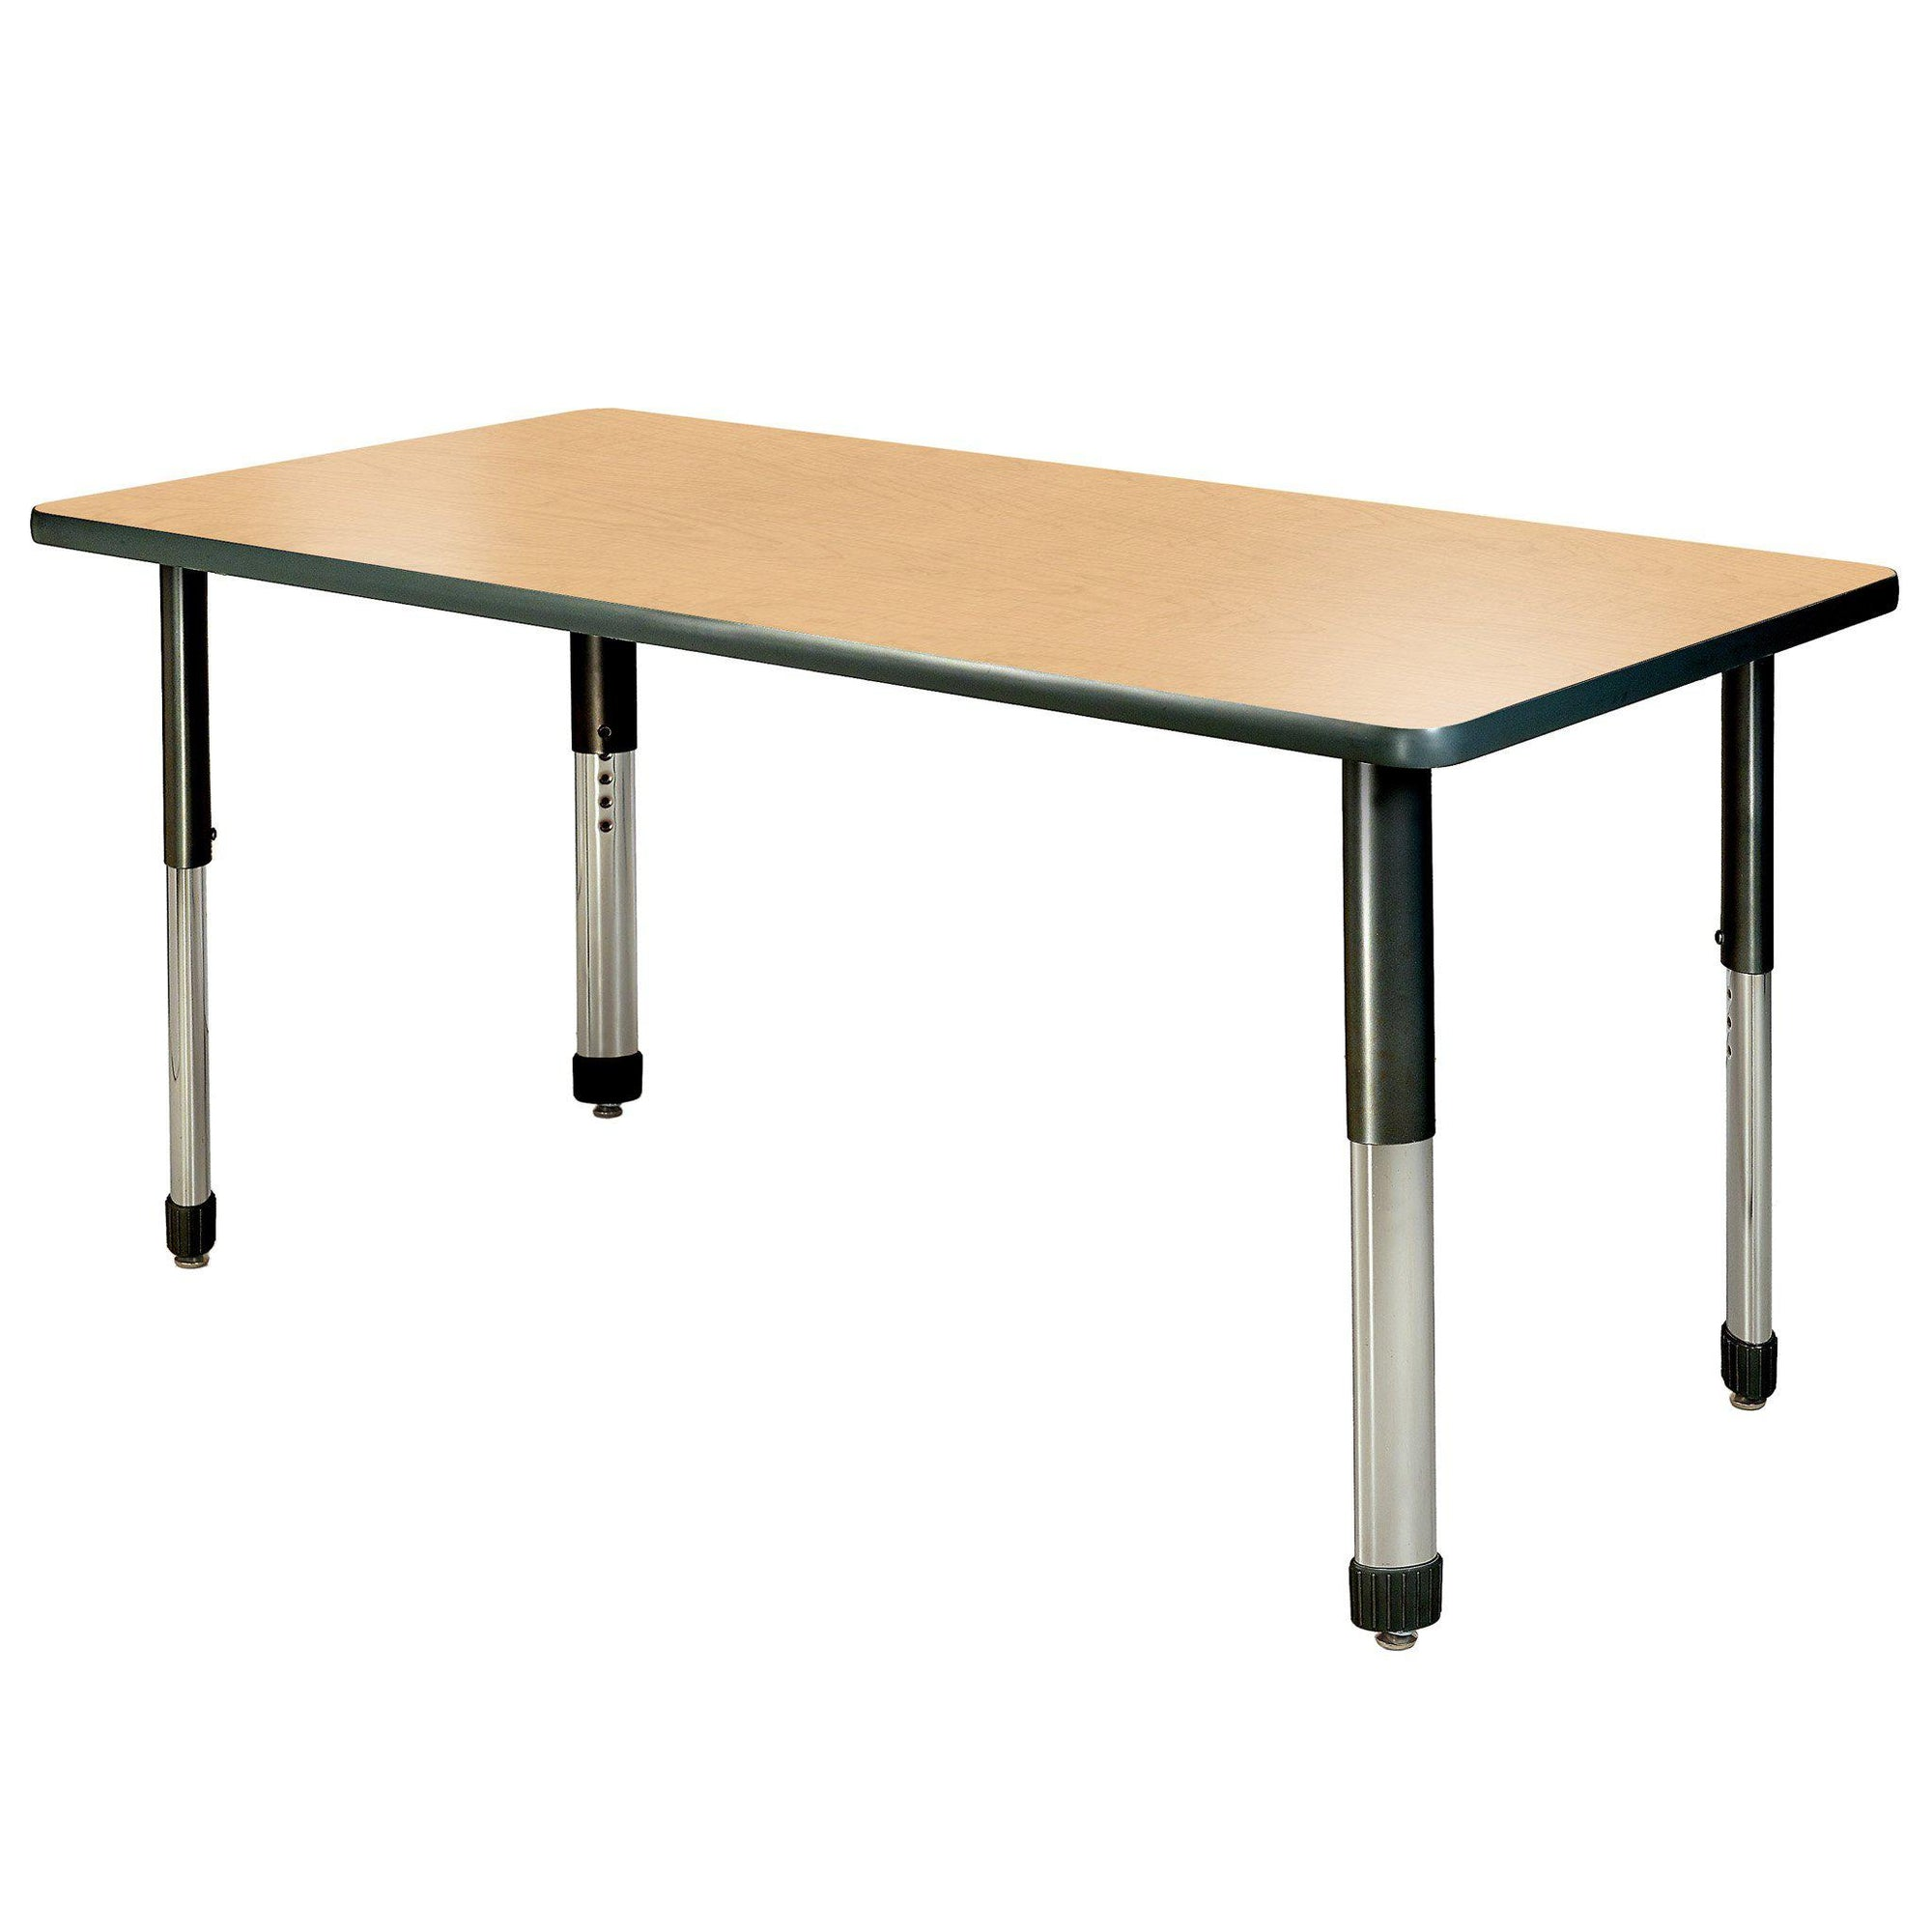 "Aero Activity Table, 24"" x 60"" Rectangle, Oval Adjustable Height Legs"